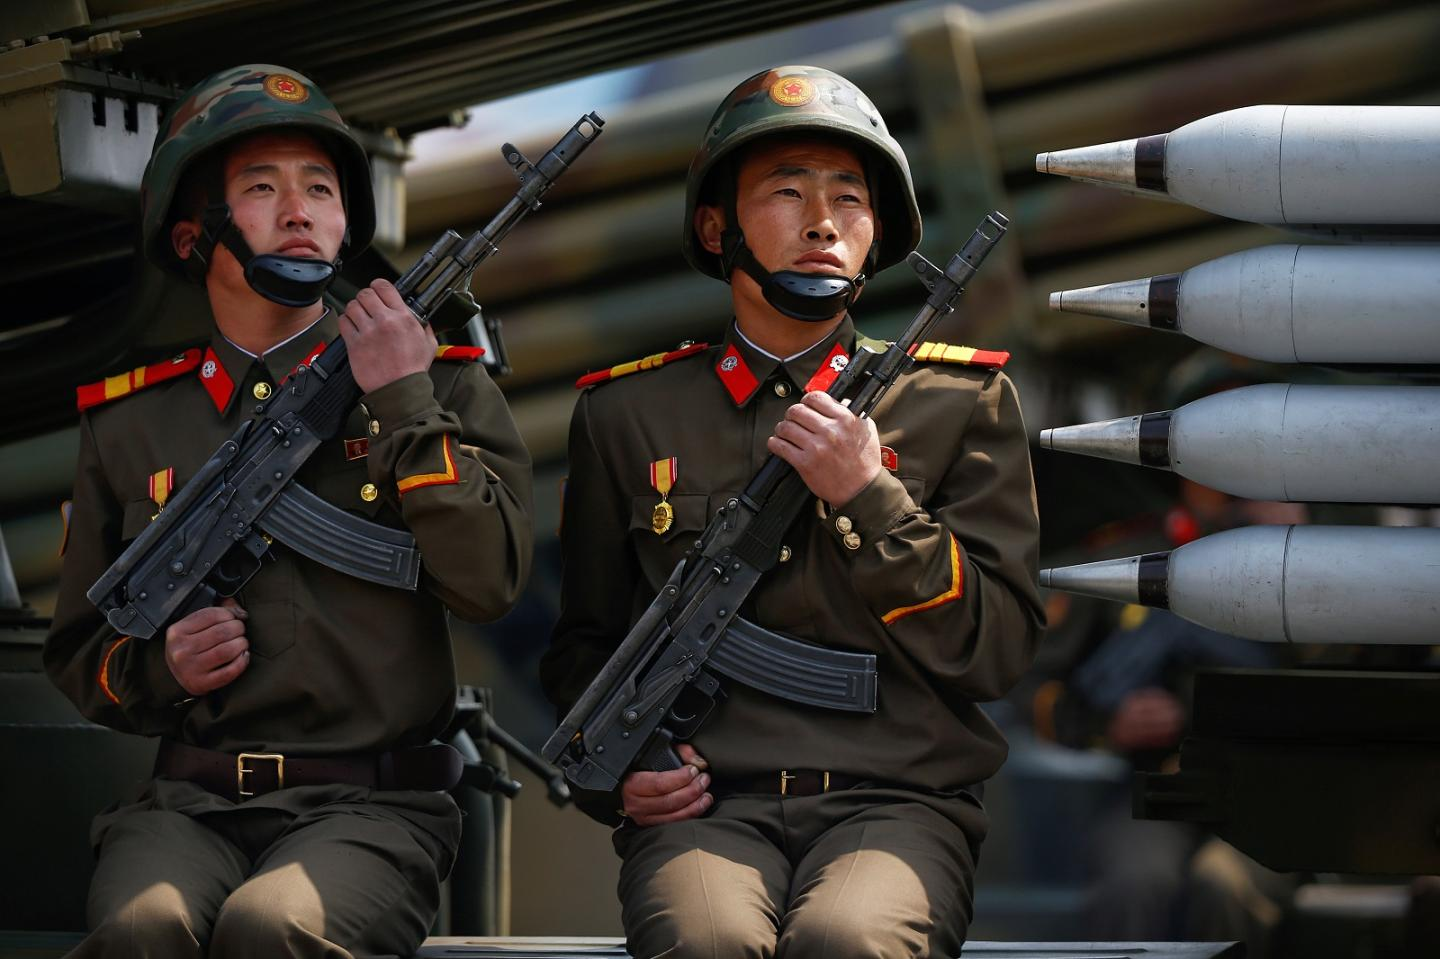 A U.S.-North Korea War: How Kim Would Retailiate To an Attack by Trump